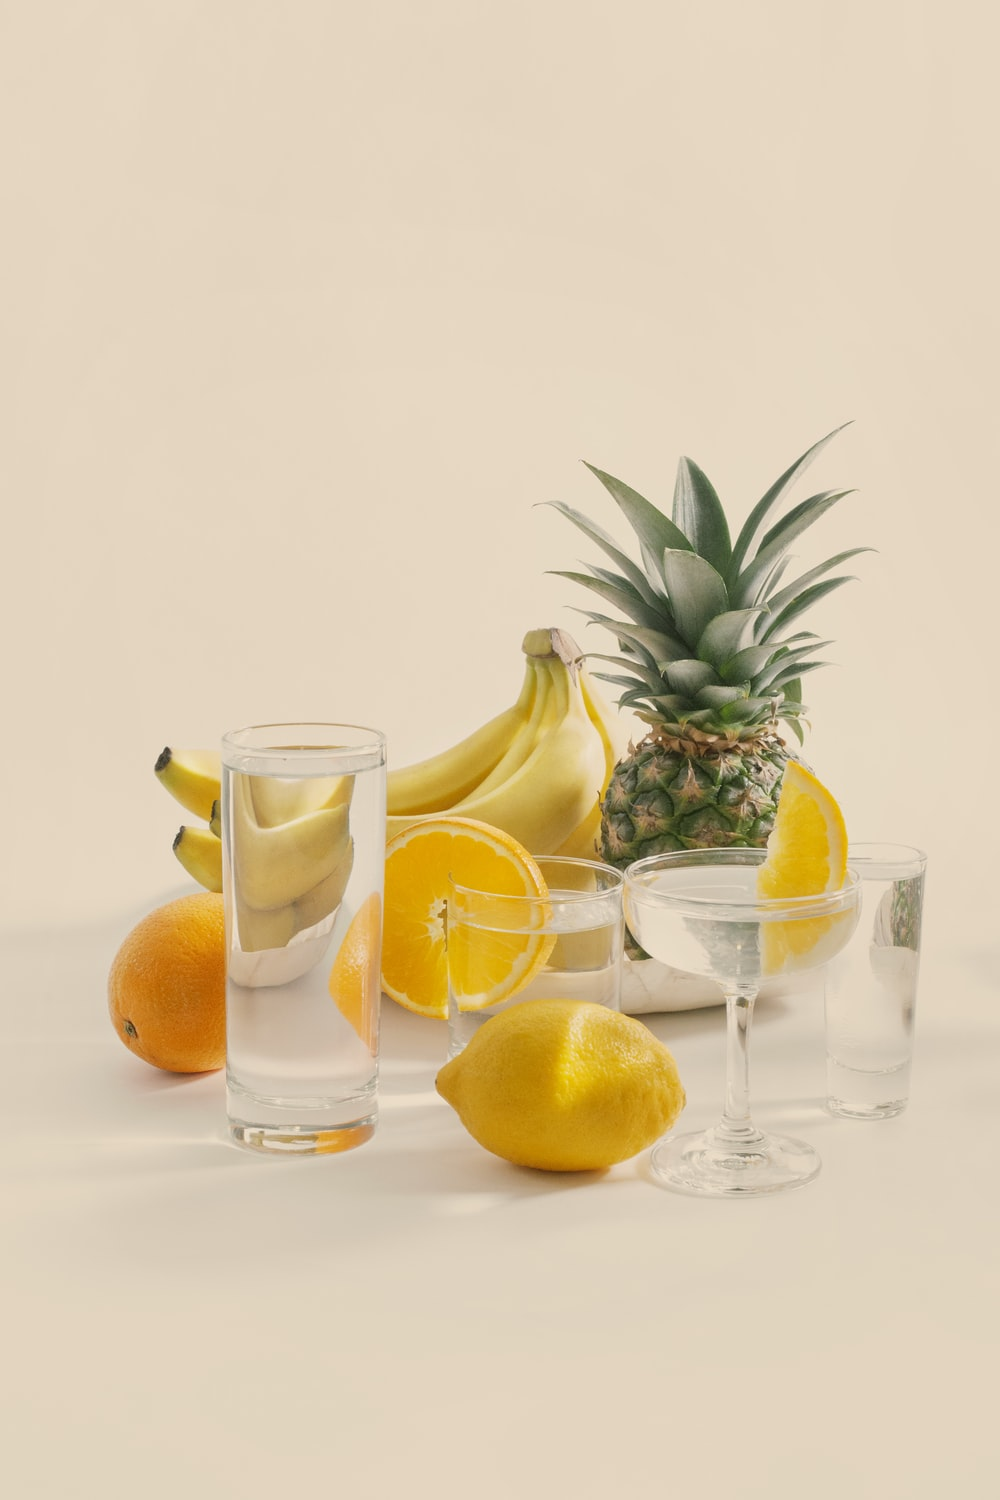 sliced lemon and clear drinking glass with sliced lemon